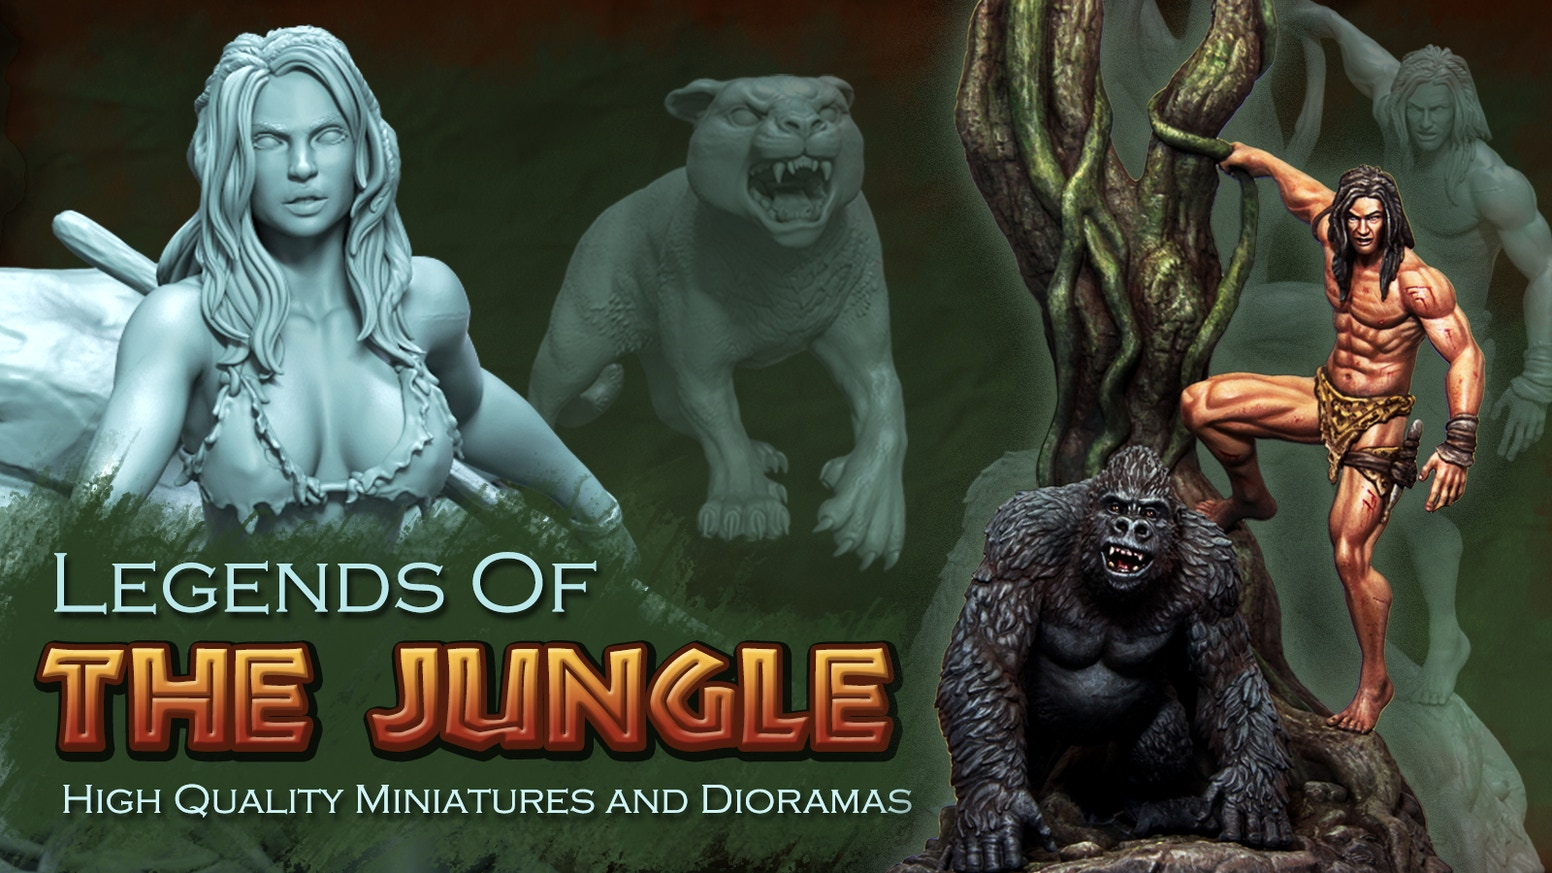 legends of the jungle by oliver posvek kickstarter legends of the jungle is a project to create a new and special line of high quality 75 mm and 54 mm scale characters and animals